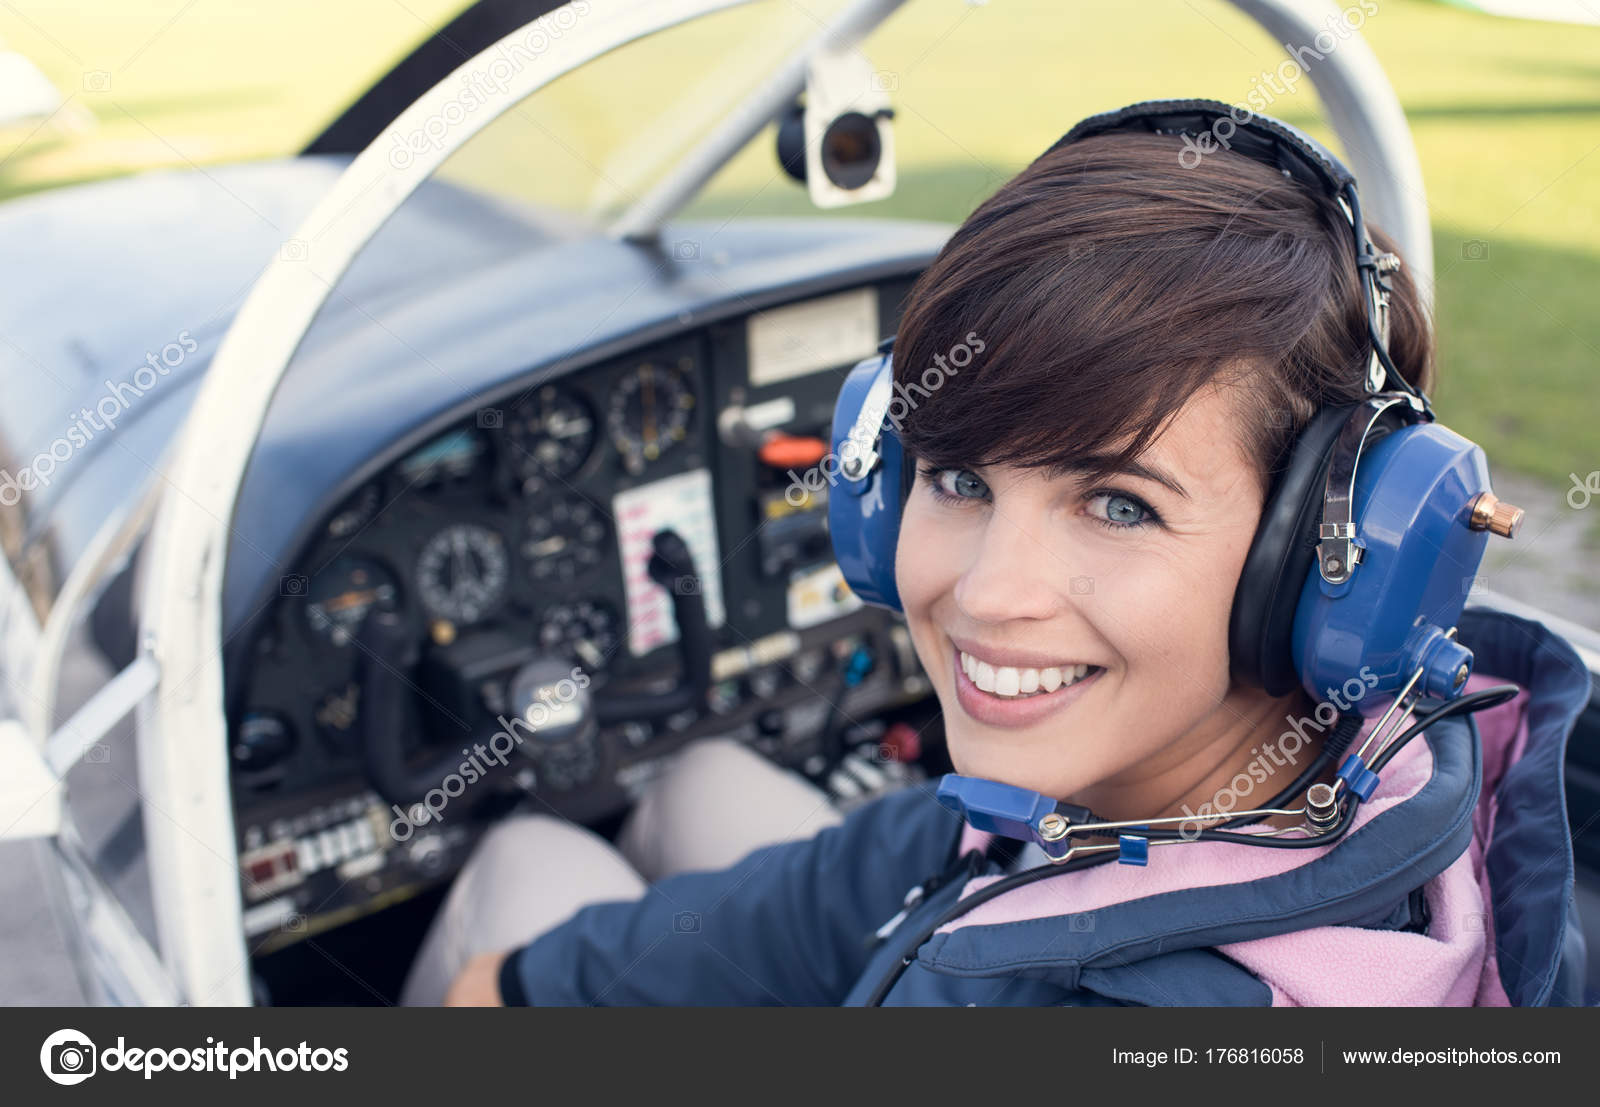 It's surprisingly difficult to find stock photos of female pilots, but I fell in love with this one.